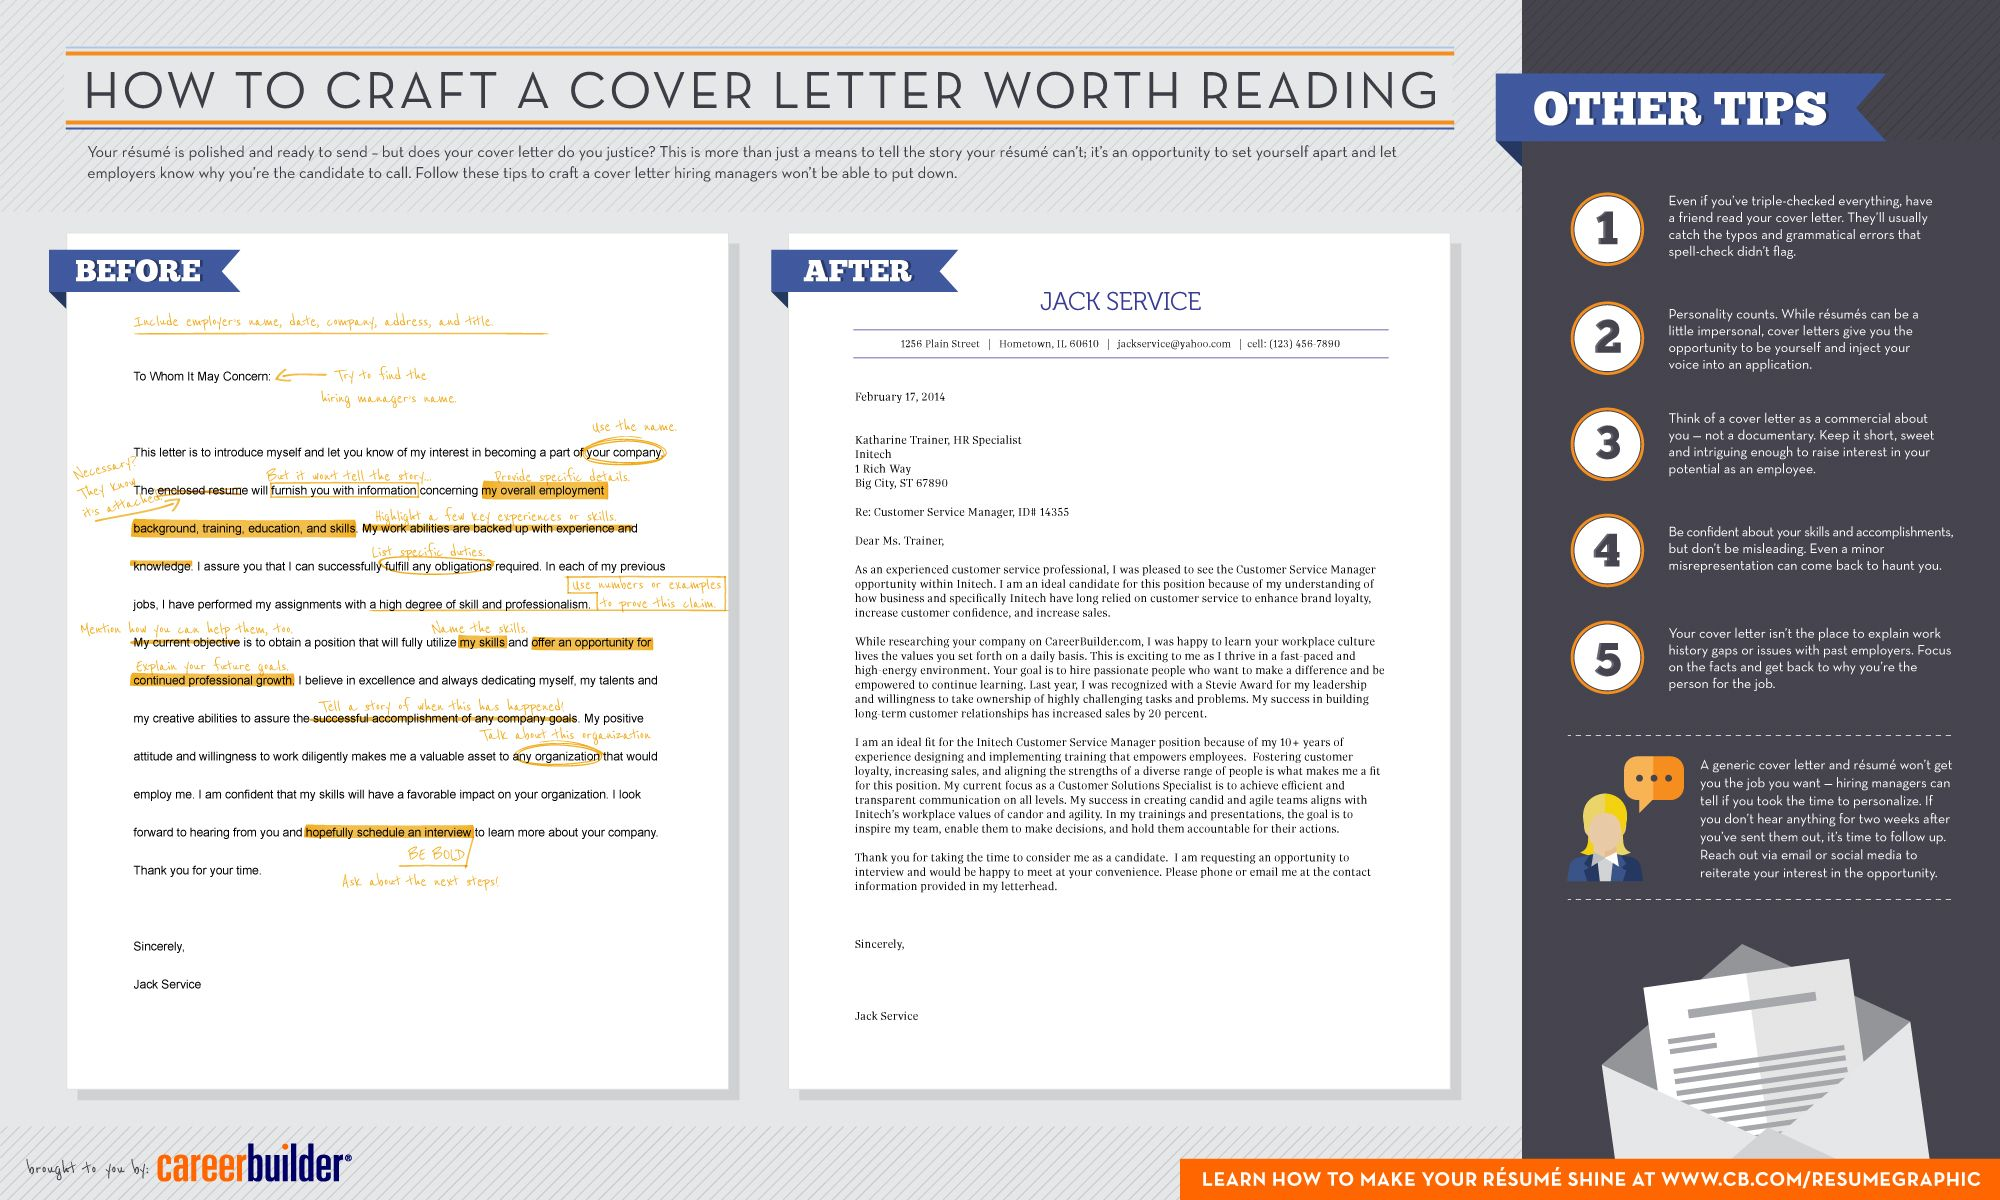 Tips For Cover Letters Cb's Newest Infographic How To Craft A Cover Letter Worth Reading